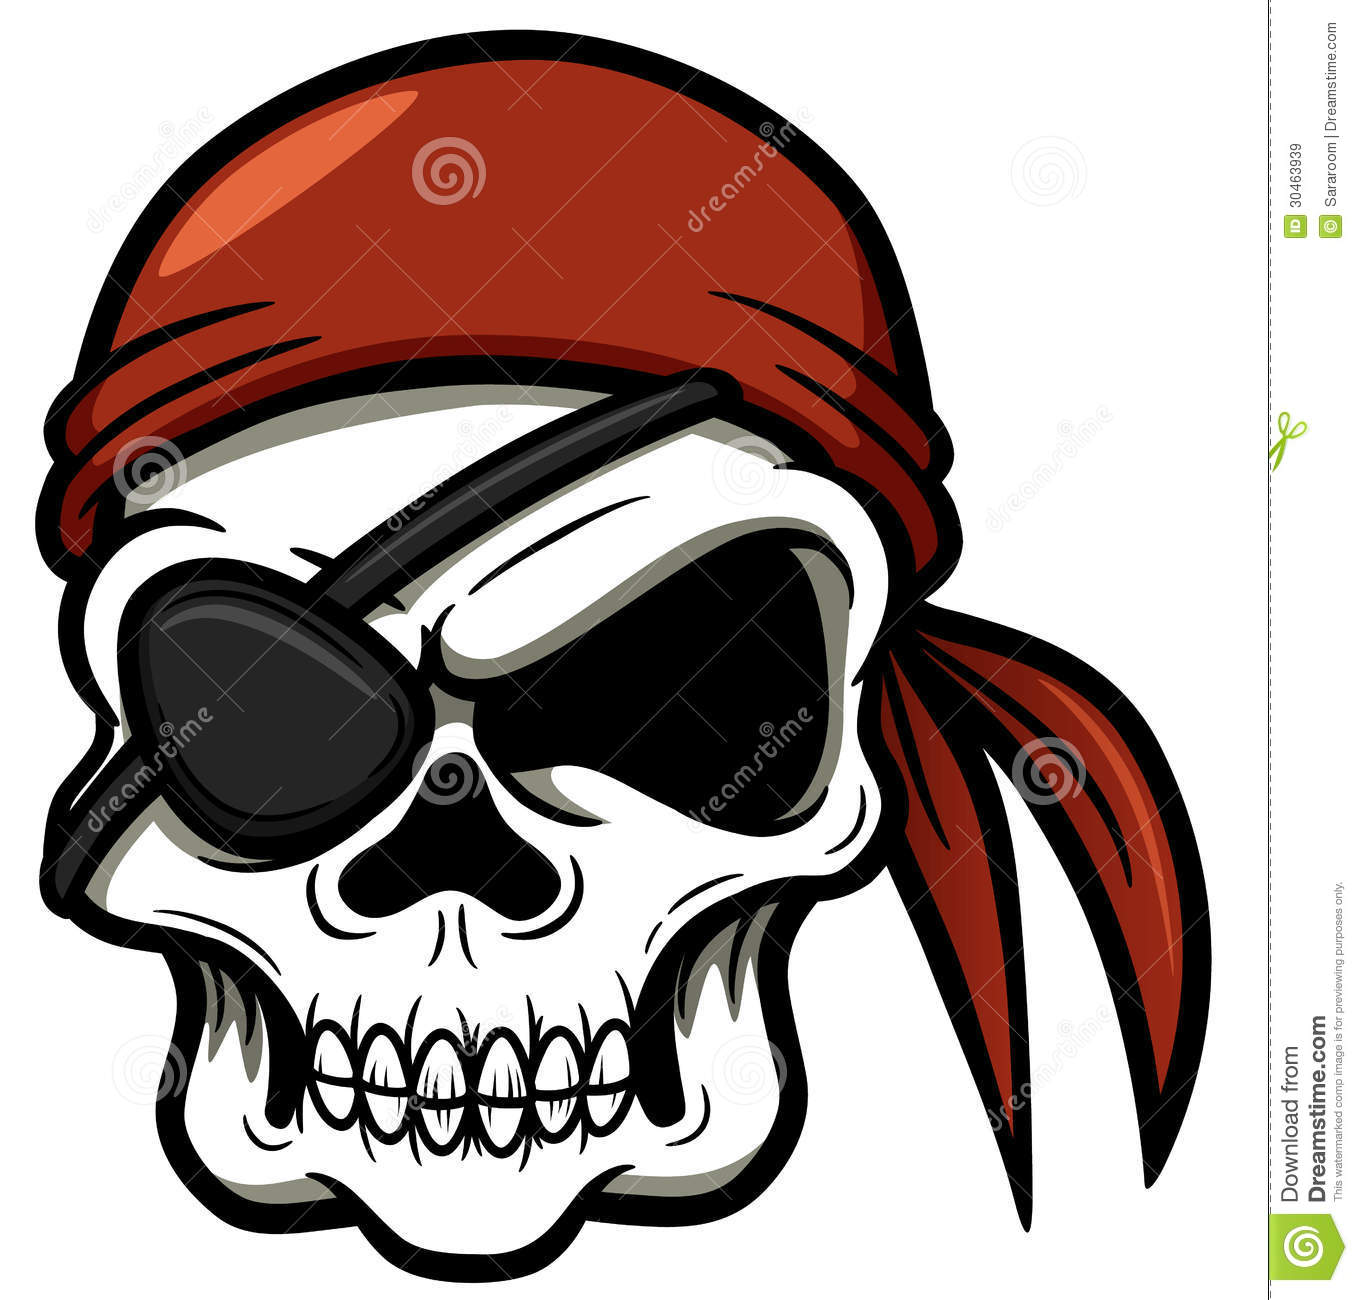 https://thumbs.dreamstime.com/z/cartoon-pirate-skull-vector-illustration-30463939.jpg